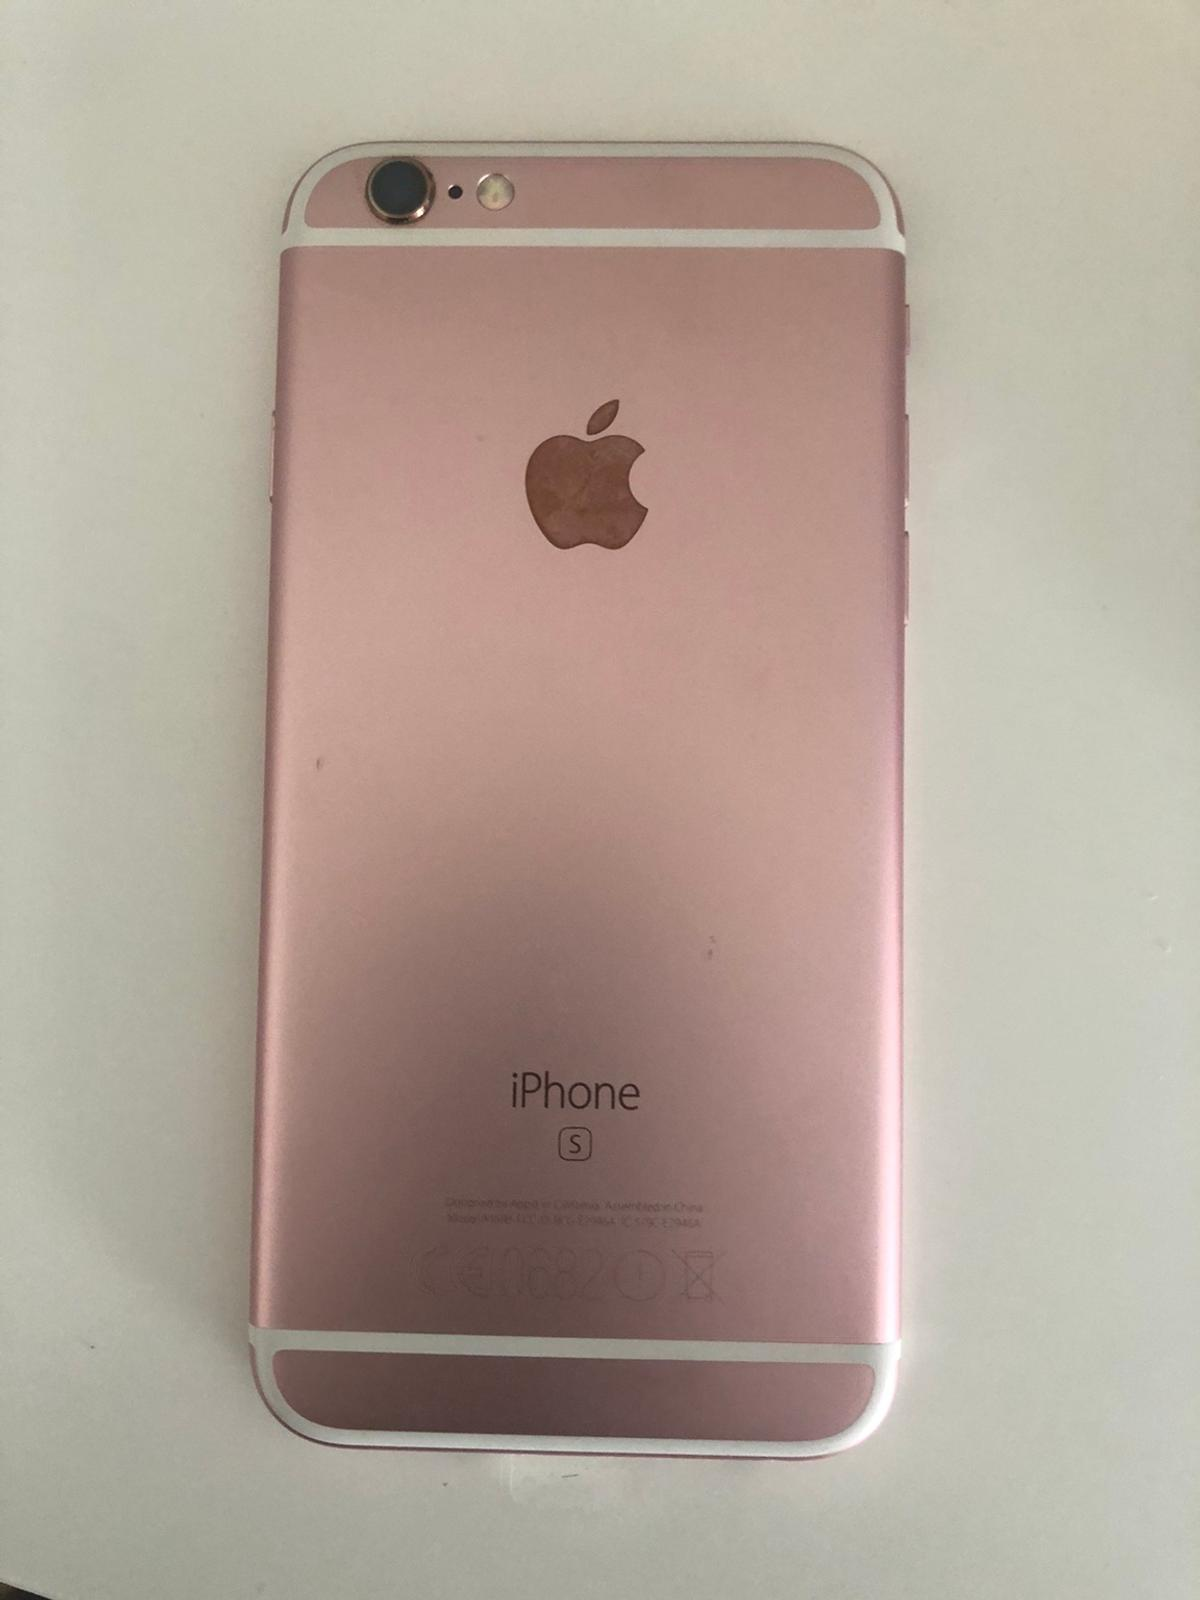 Hi here I have for sale iPhone 6s 64GB unlocked new CONDITION well look after fully working oder grate shape see pitchers for more details any question fell free to contact me thanks for looking. NO POSTAGE AVAILABLE plz don't ask PayPal payment or to post to anywhere this item is only for collections.